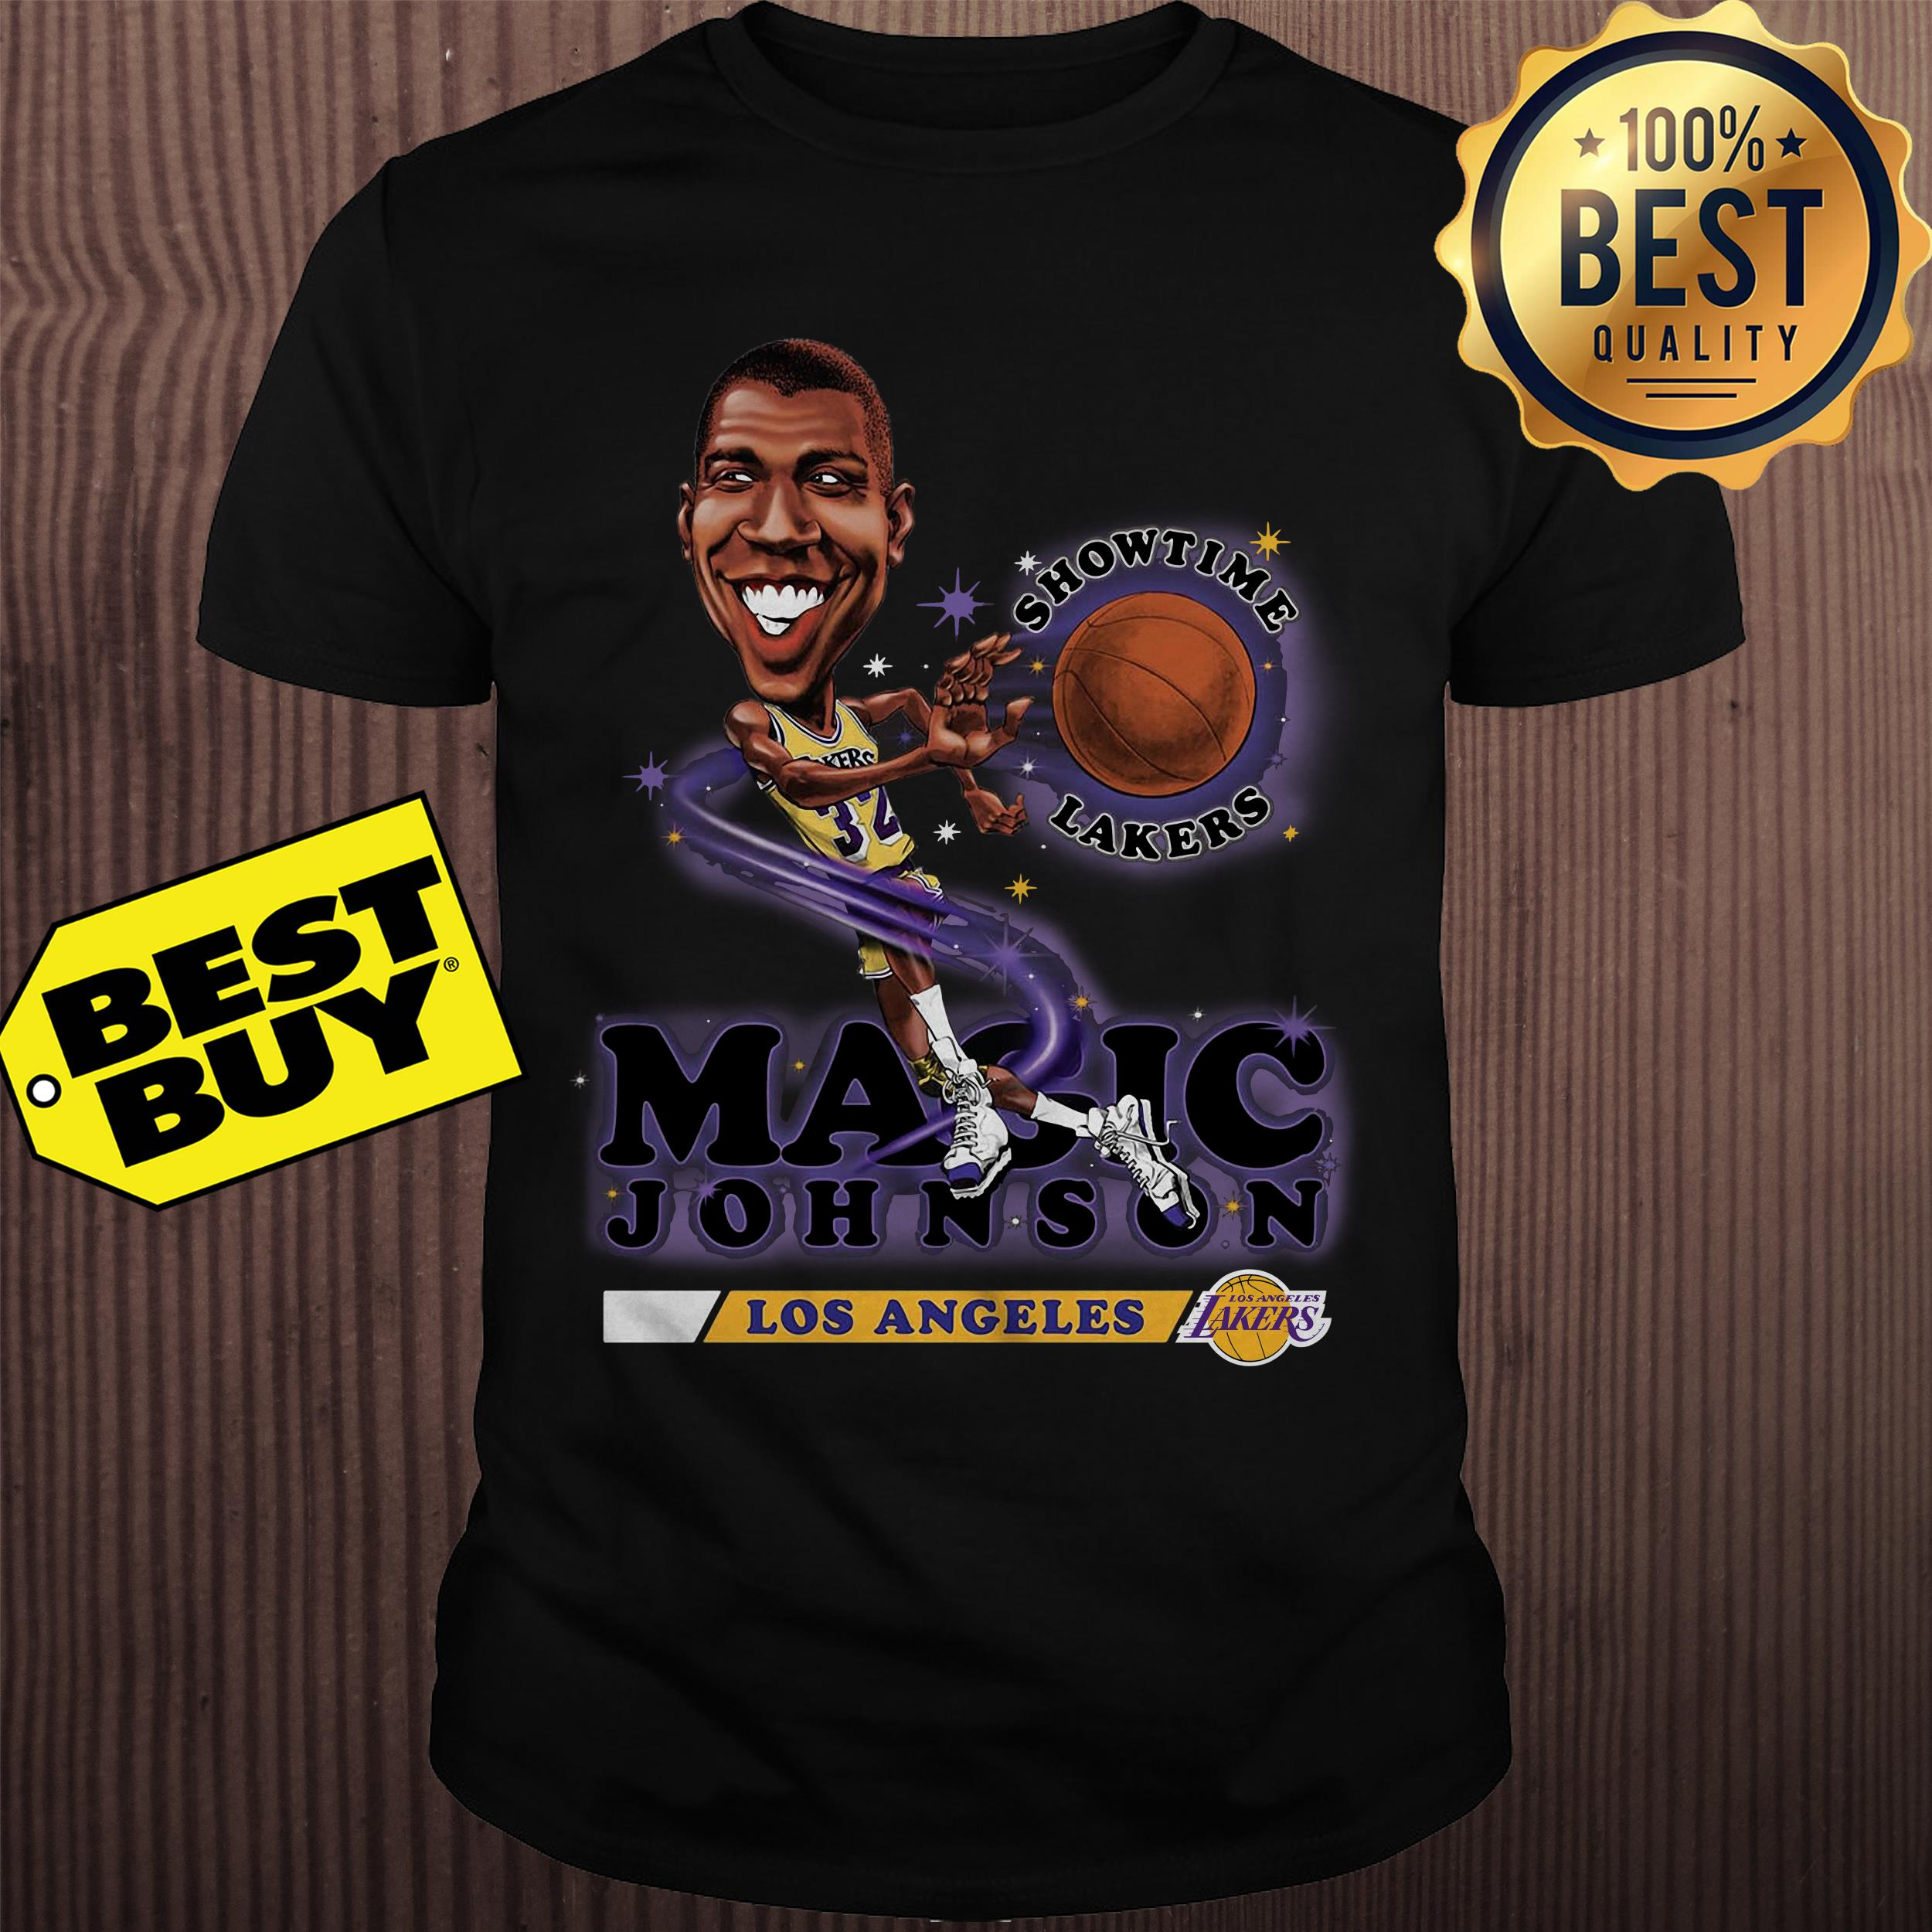 new product 2beb2 939ab Mitchell & Ness Magic Johnson Los Angeles Lakers Black Salem ...